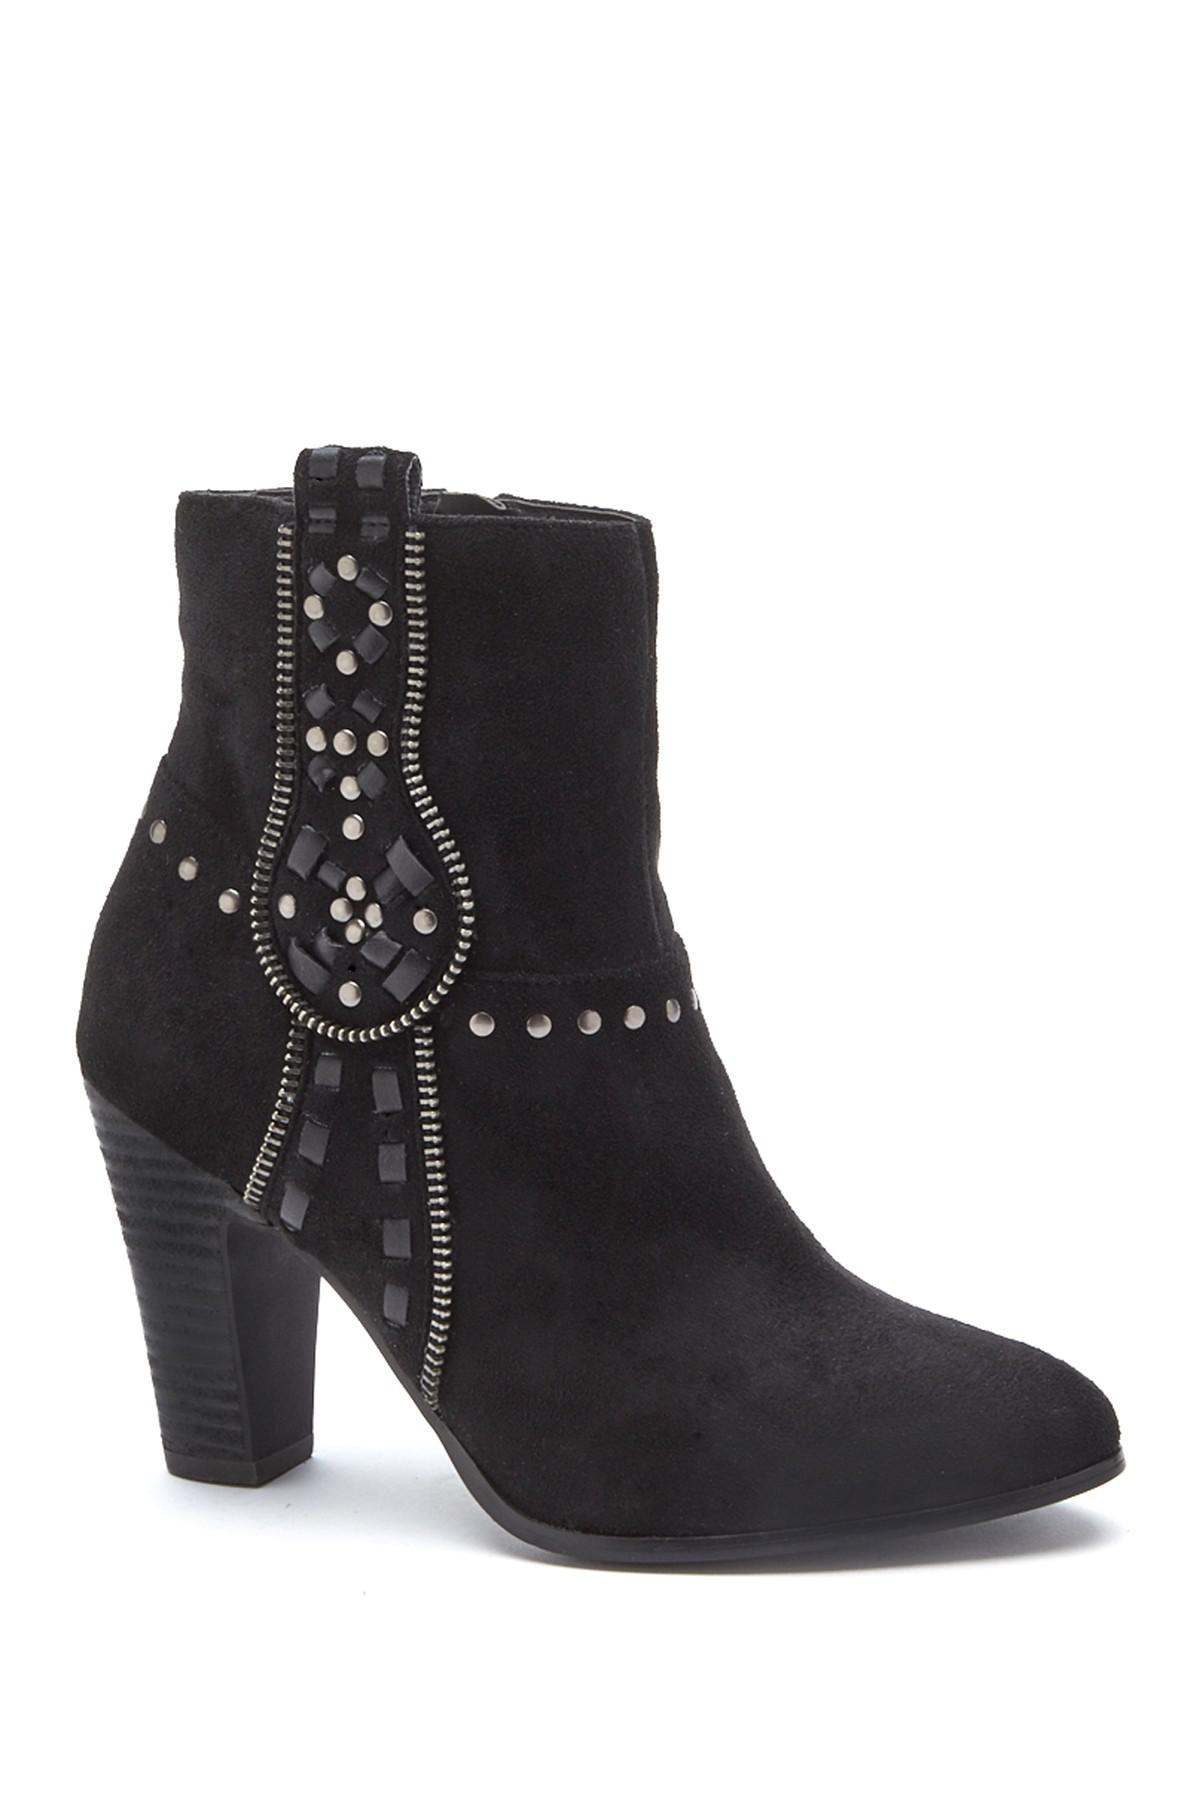 Matisse Deco Faux Suede Studded Bootie S1R86X